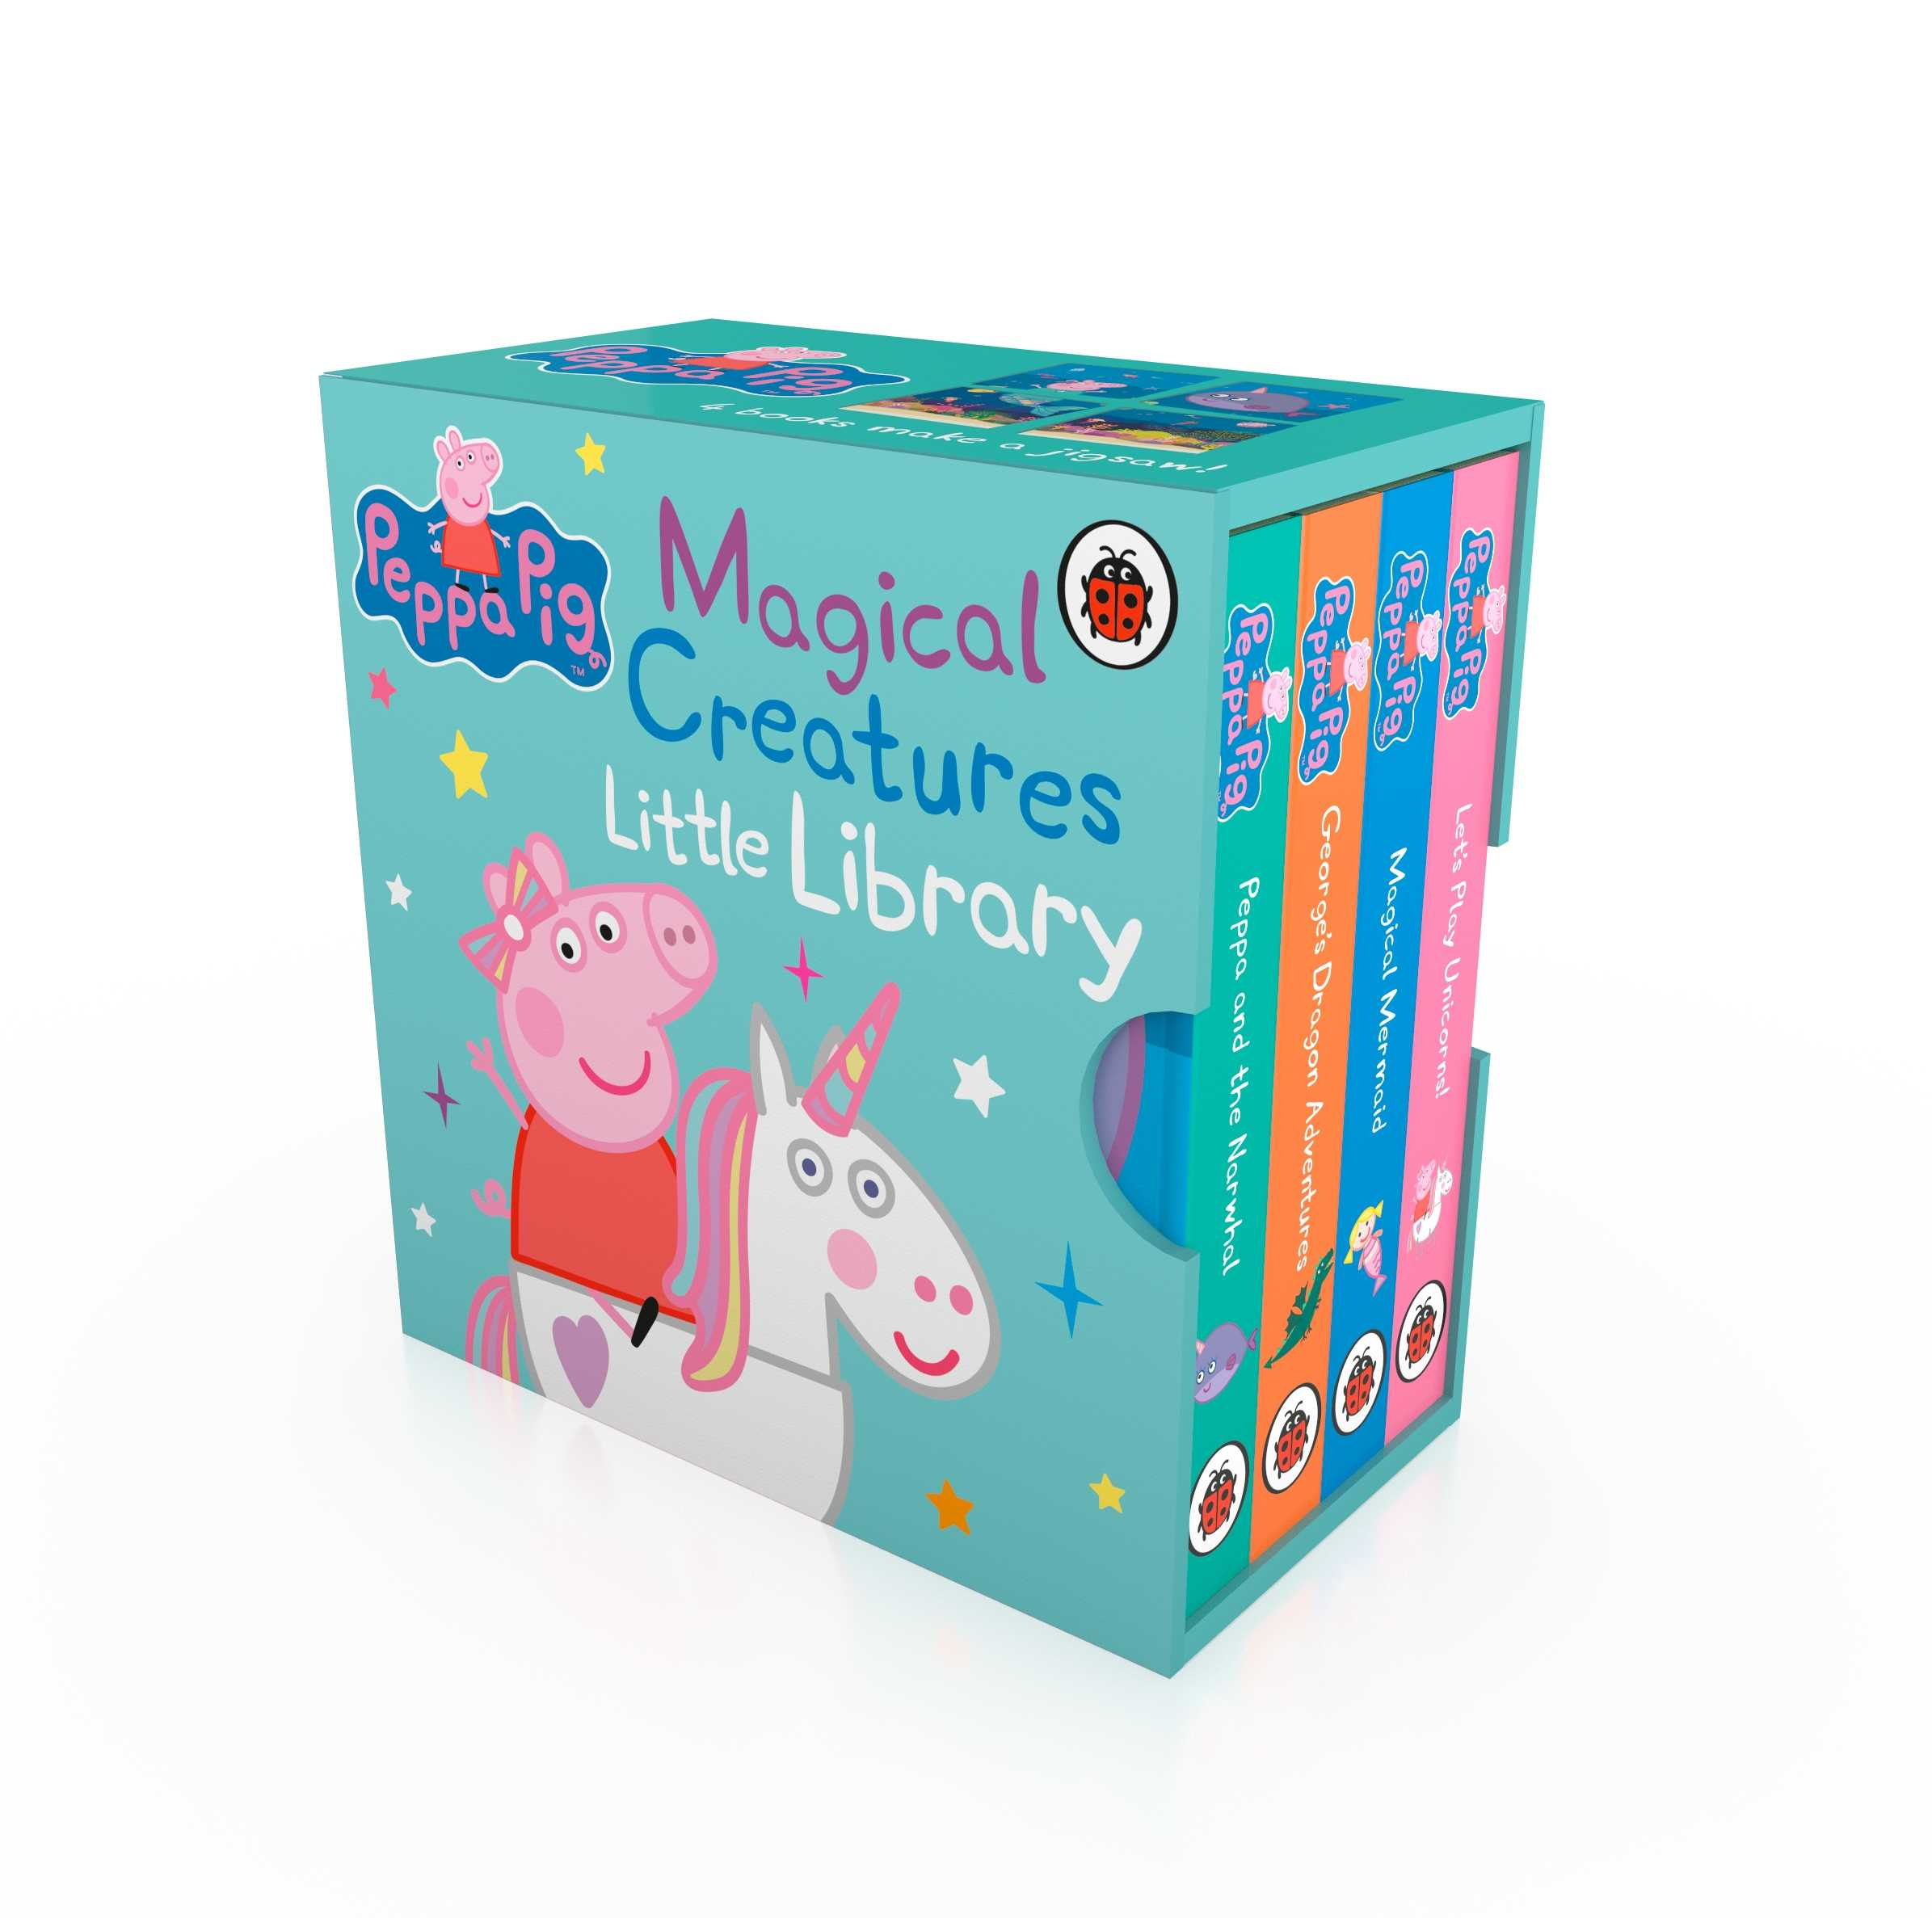 Peppa's Magical Creatures Little Library